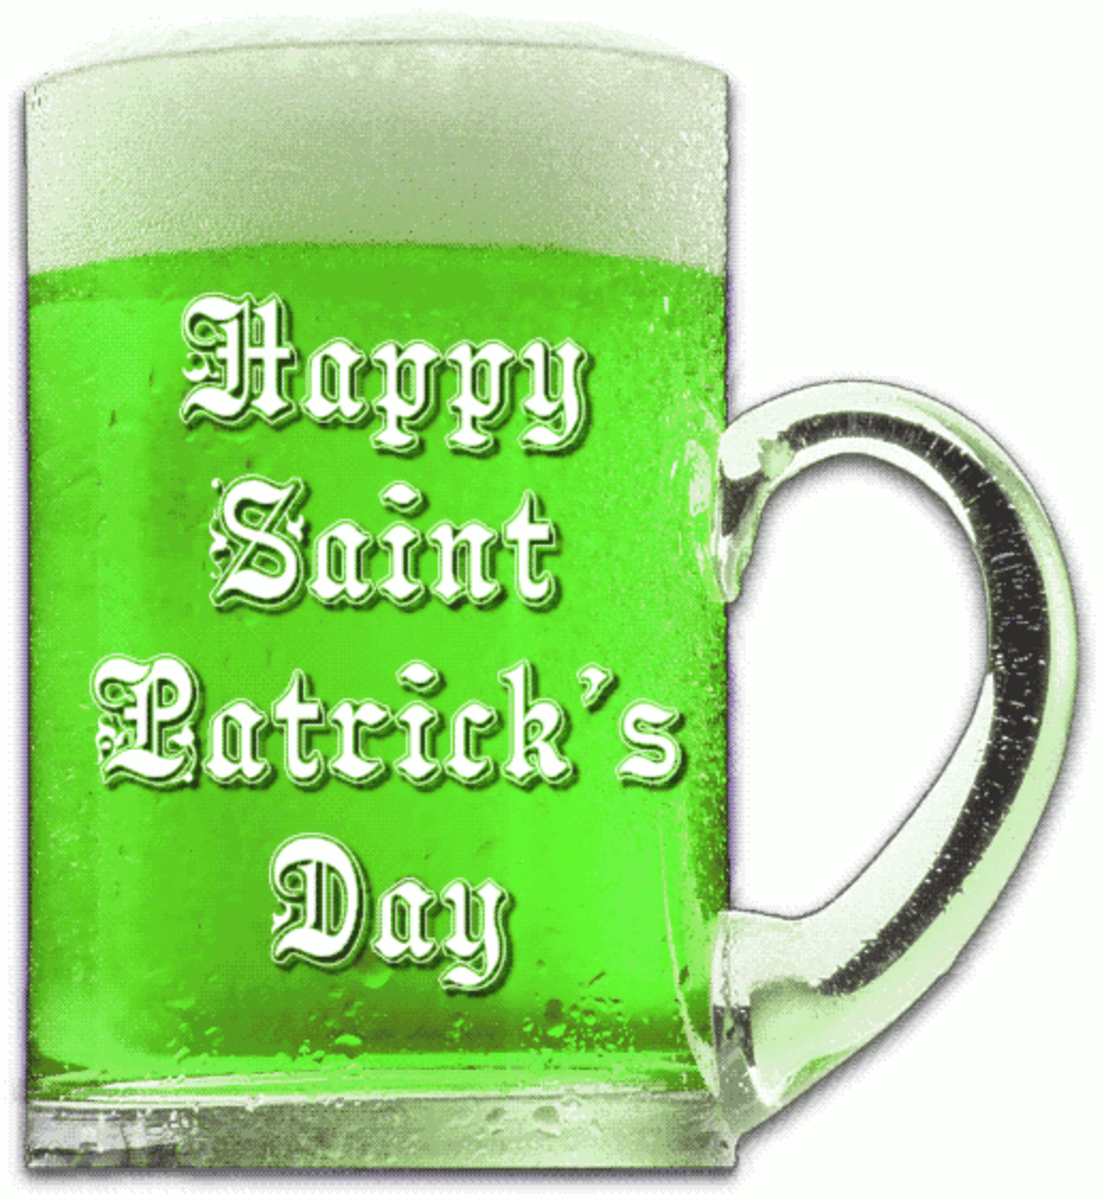 'Happy Saint Patrick's Day' on Green Beer Image